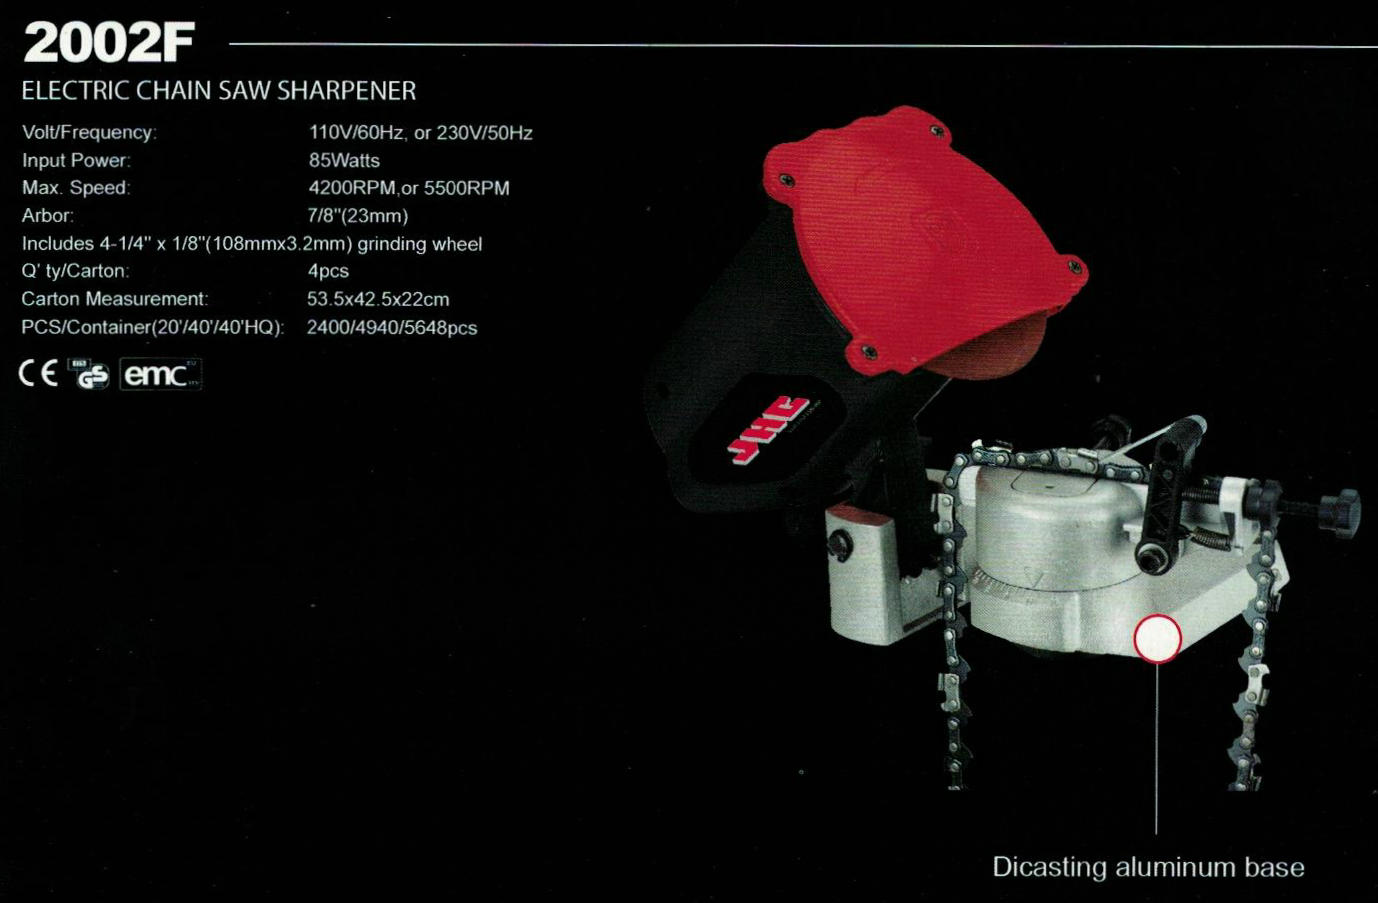 ELECTRICAL CHAIN SAW SHARPENER 2002F